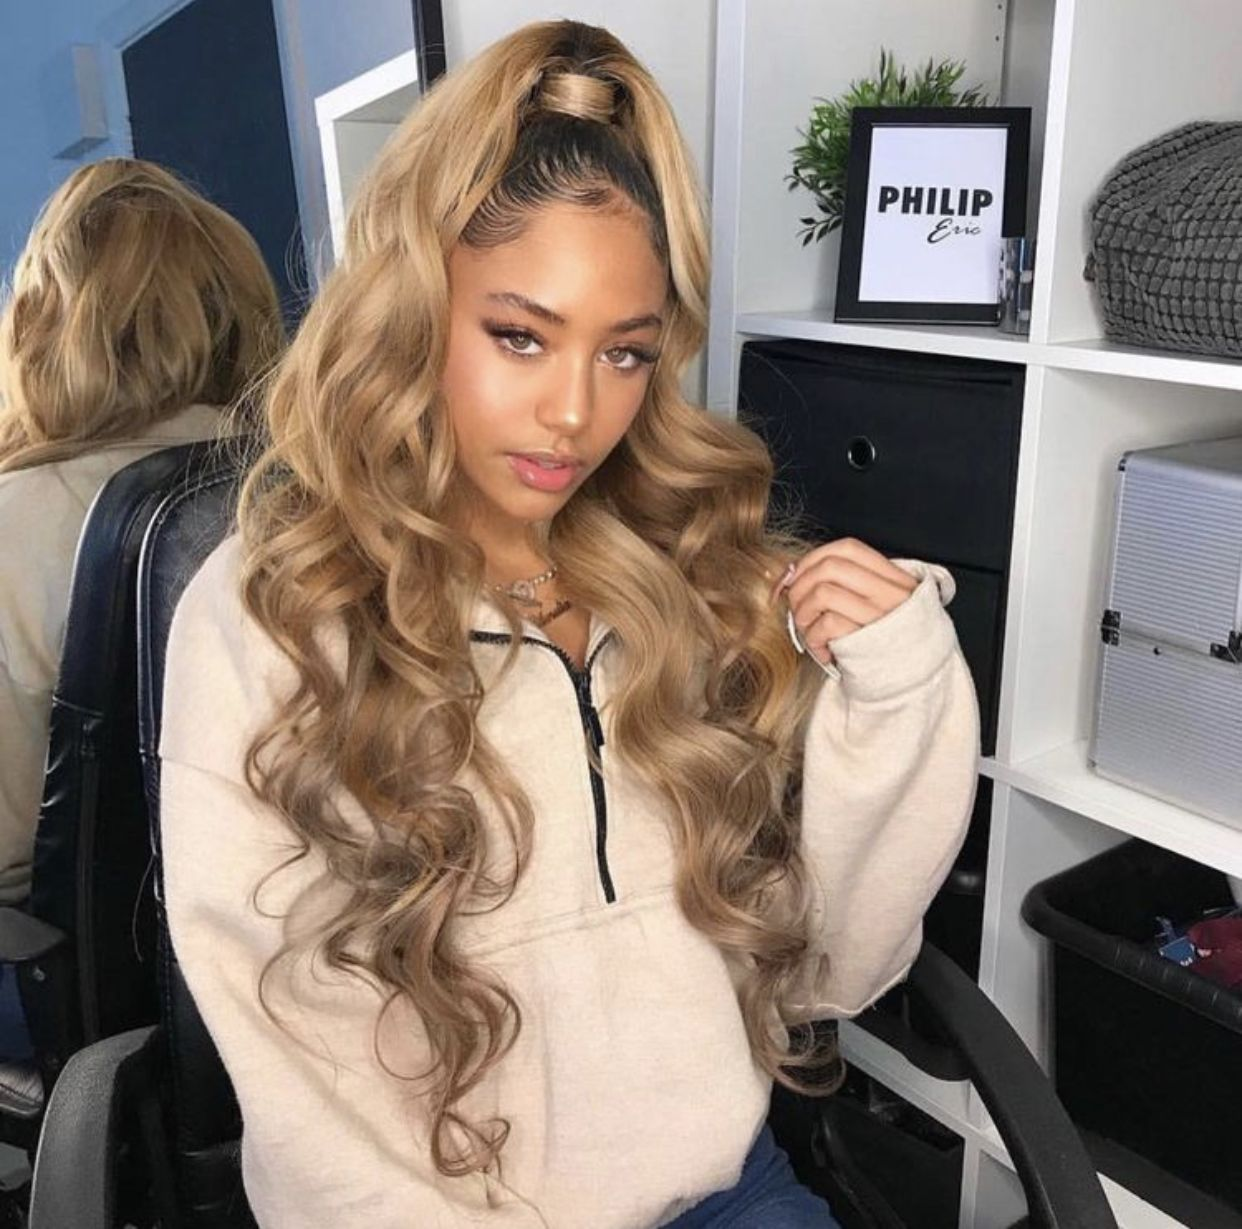 Pin By Miaya Pitts On Beauty In 2020 Blonde Hair Dyed Black